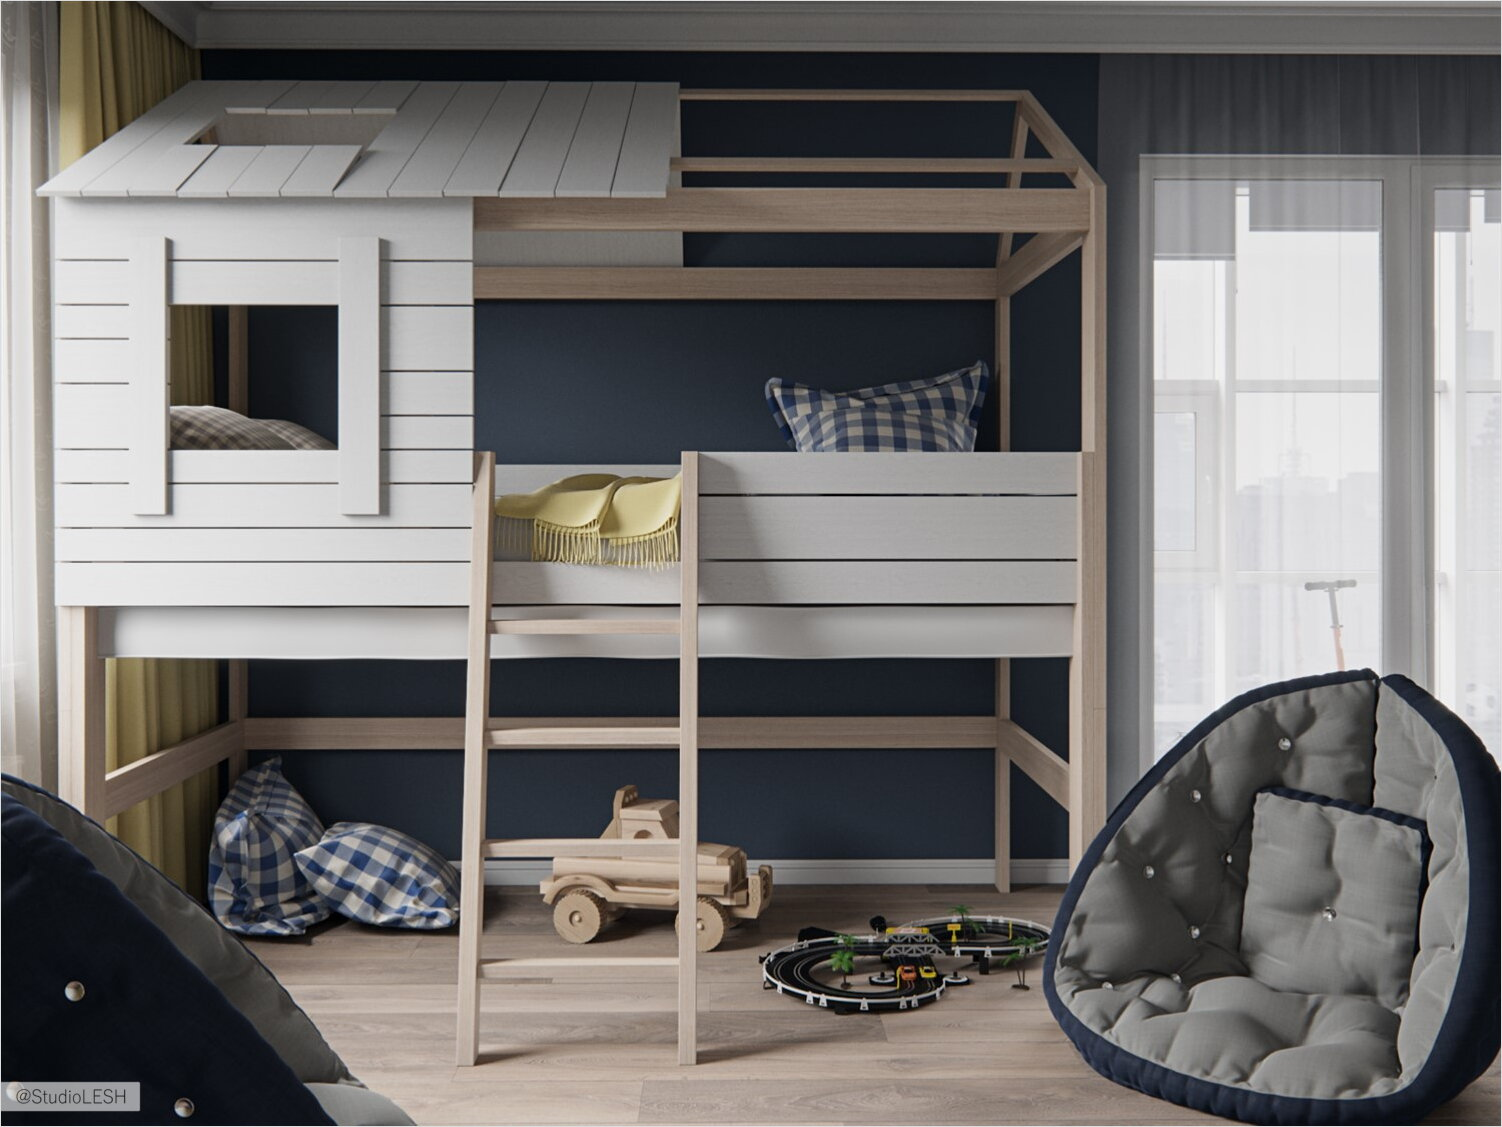 House-shaped bunk bed and comfortable armchair